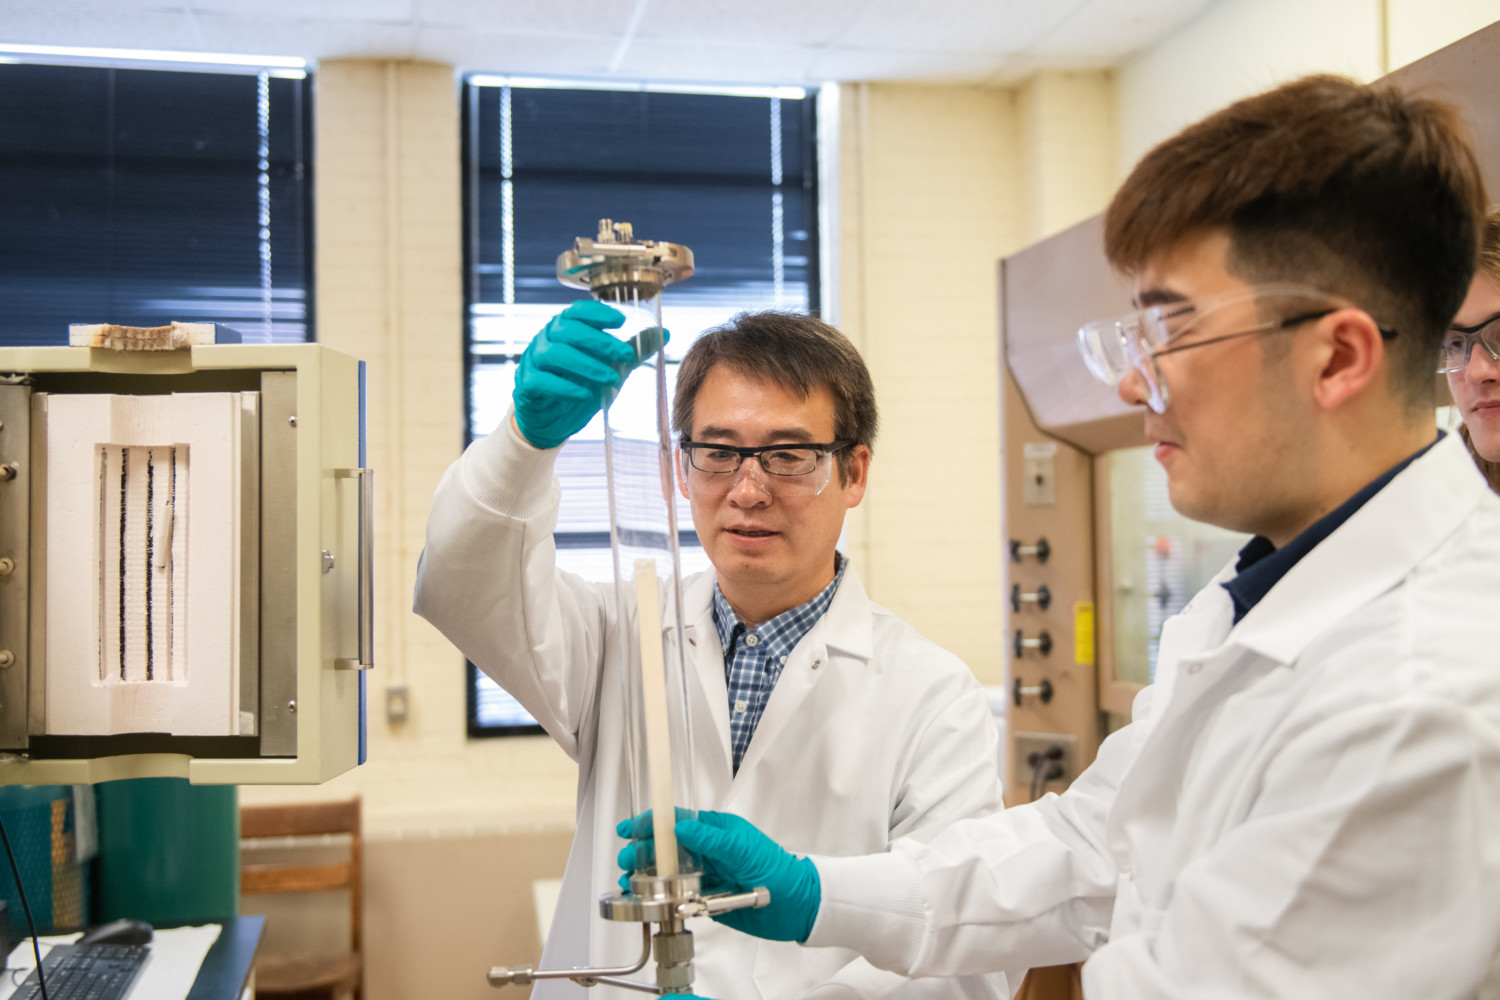 Professor Tong, left, and Ph.D. student Shenglong Mu work in their lab on new technology that combines 3D printing and laser processing. Photo via Clemson University.